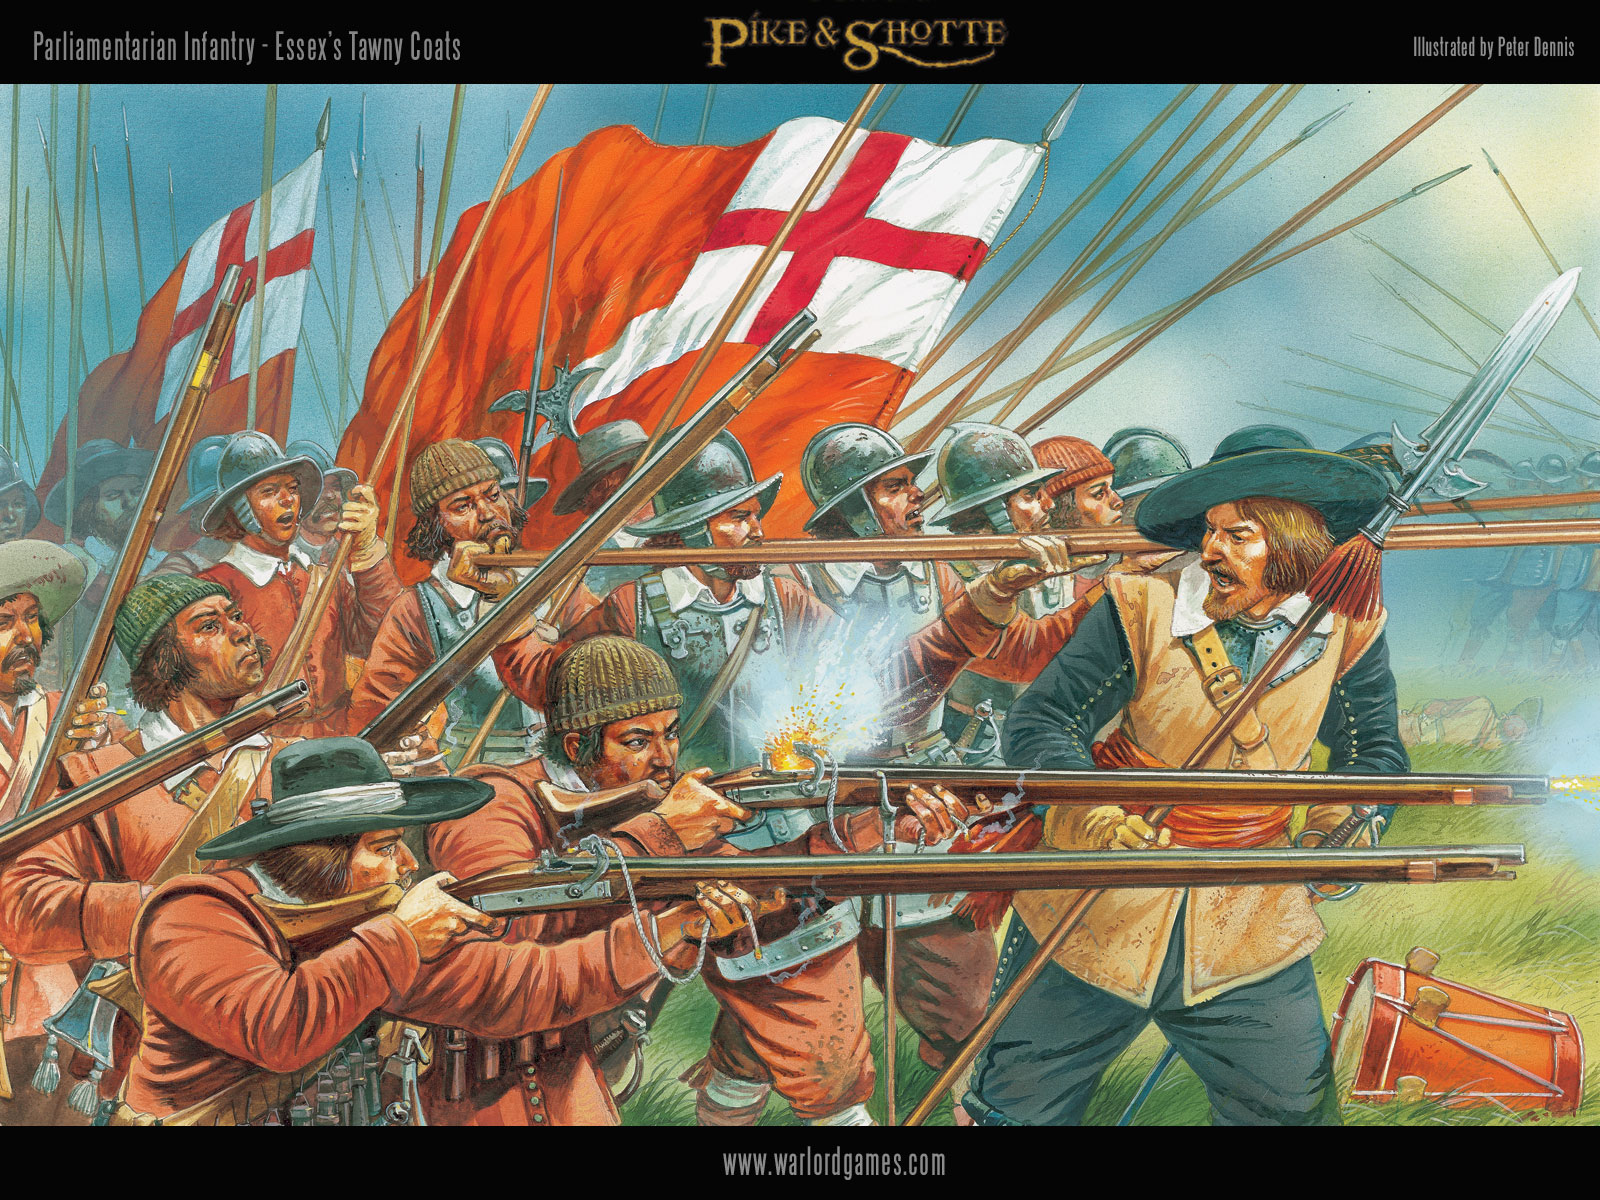 Illustrations P&S ECW-Parliament-Infantry-wallpaper